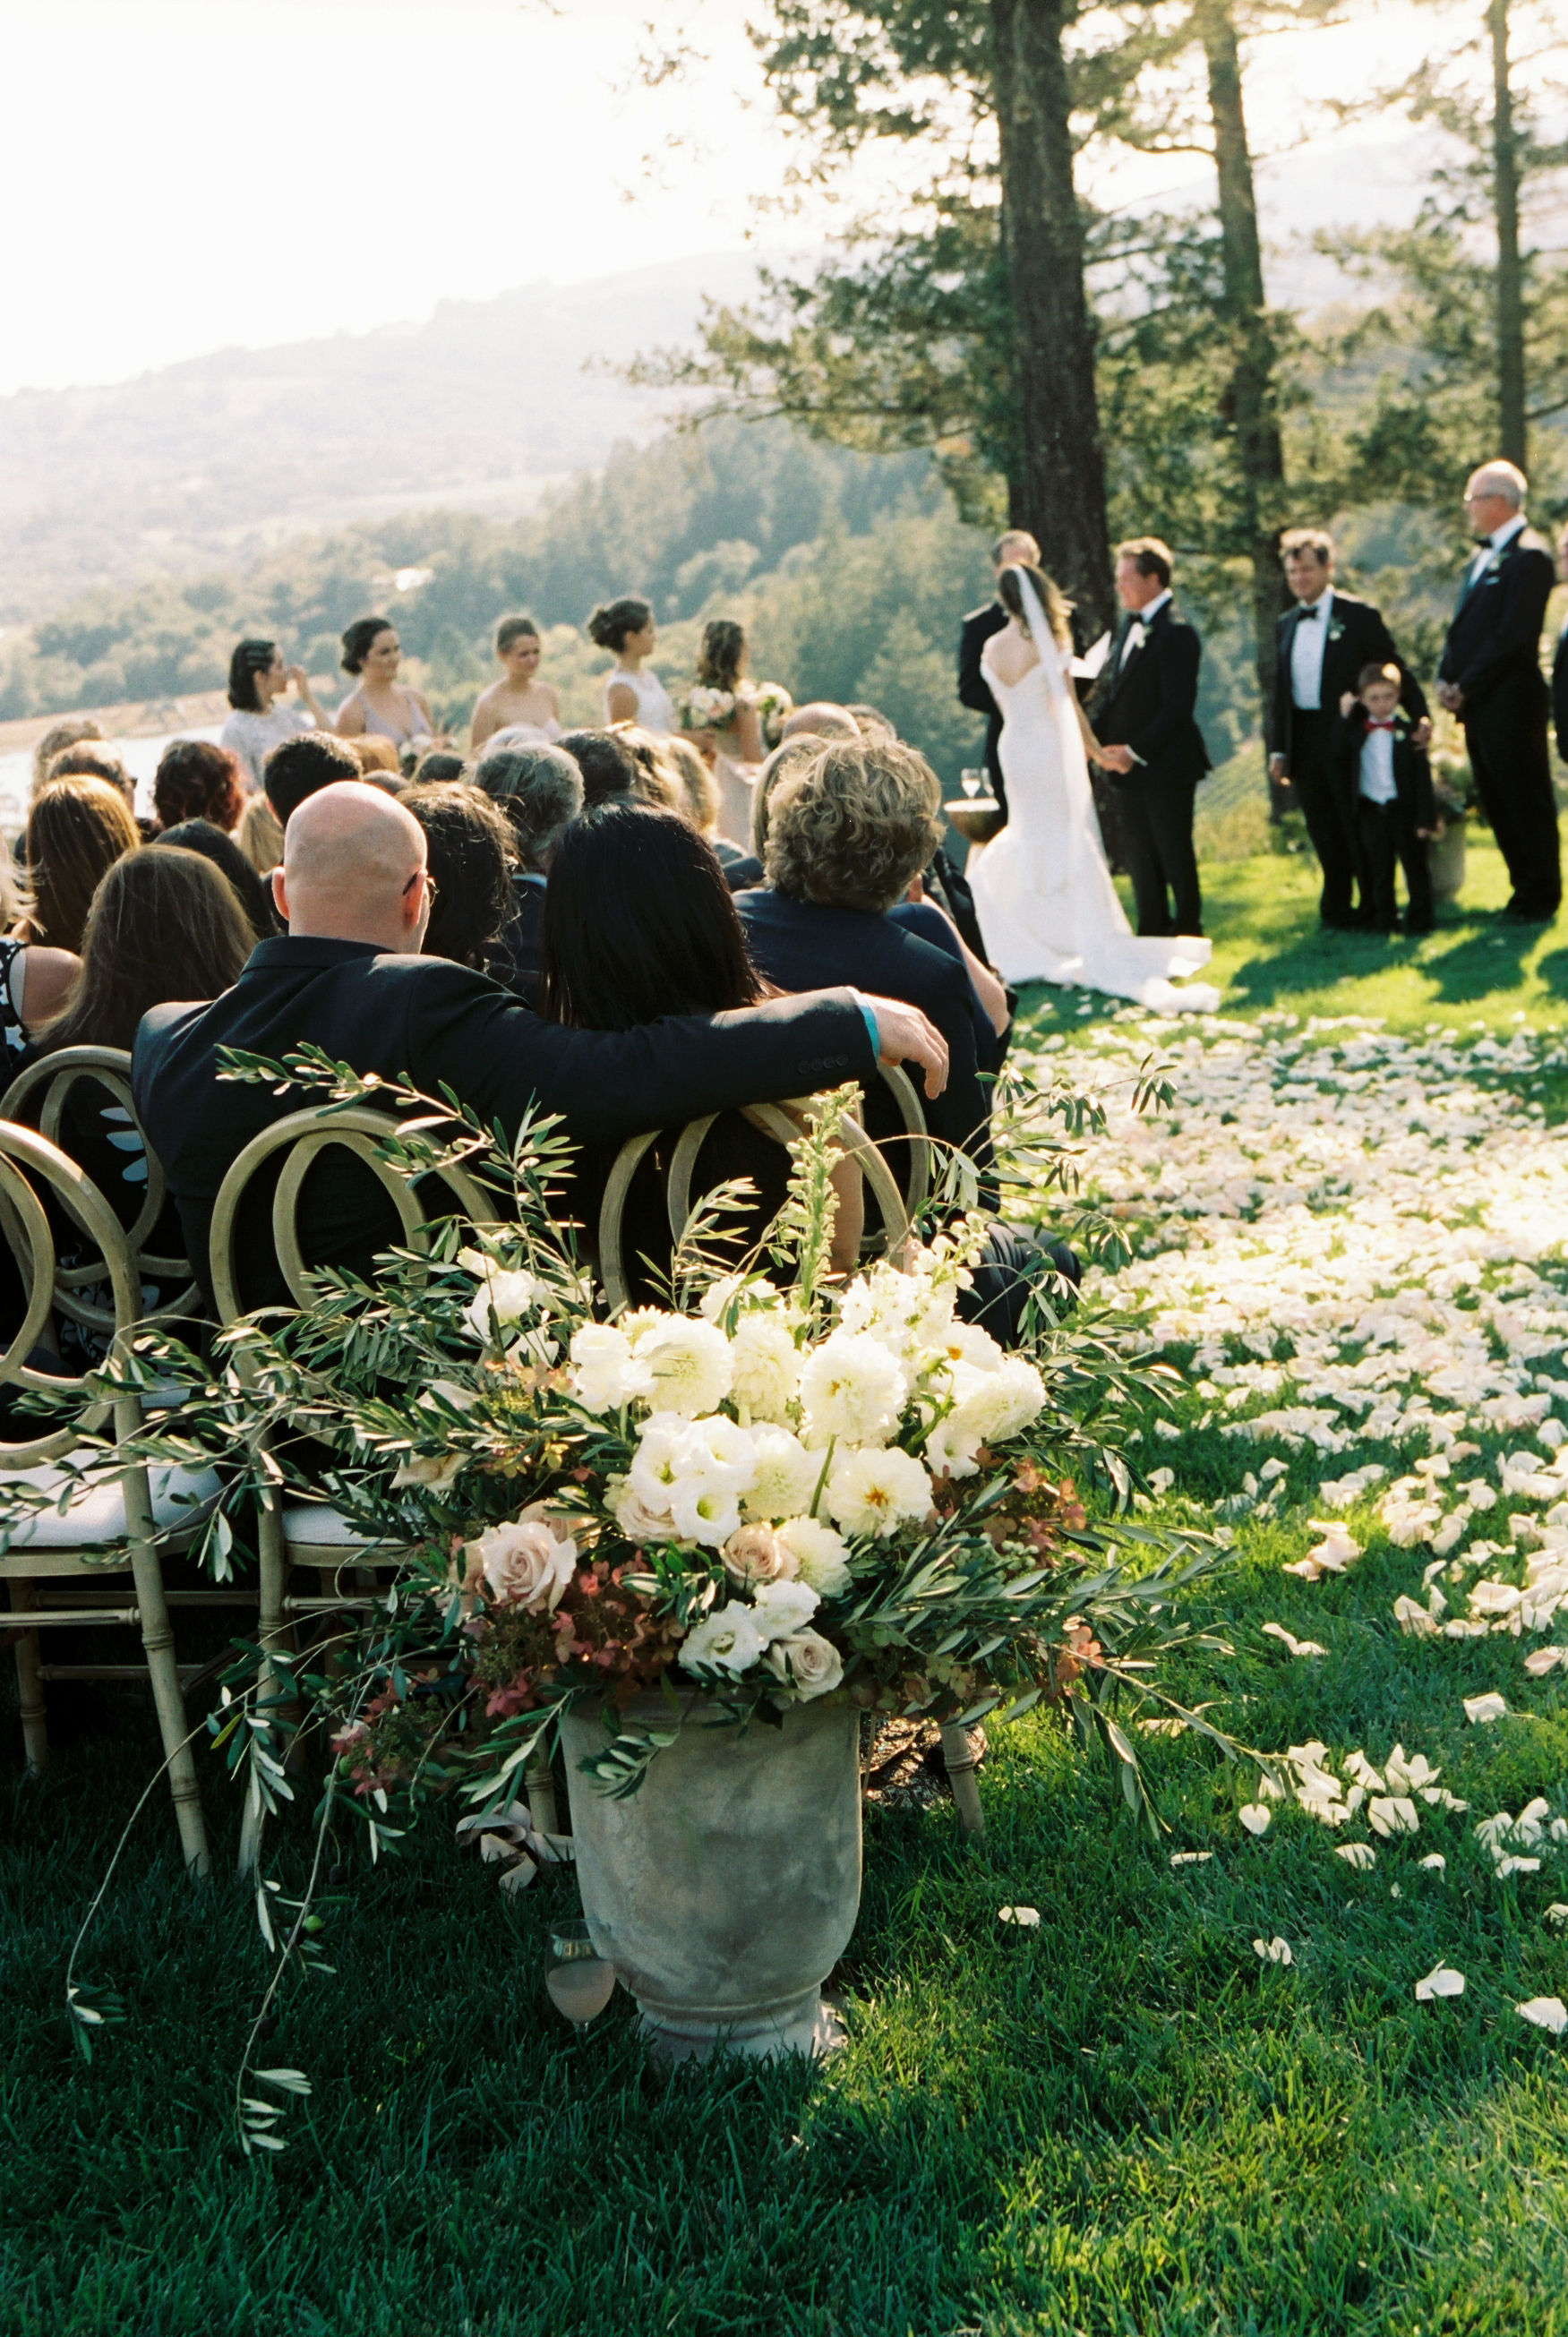 Dare to daydream -  End your vows with a look into the future. Share what excites you with a smile as you look into the days ahead and promise to be there for your spouse, in sickness and in health, for better or for worse. It will seal your sentiments with a ring of hope and leave everyone in the crowd beaming from ear to ear.